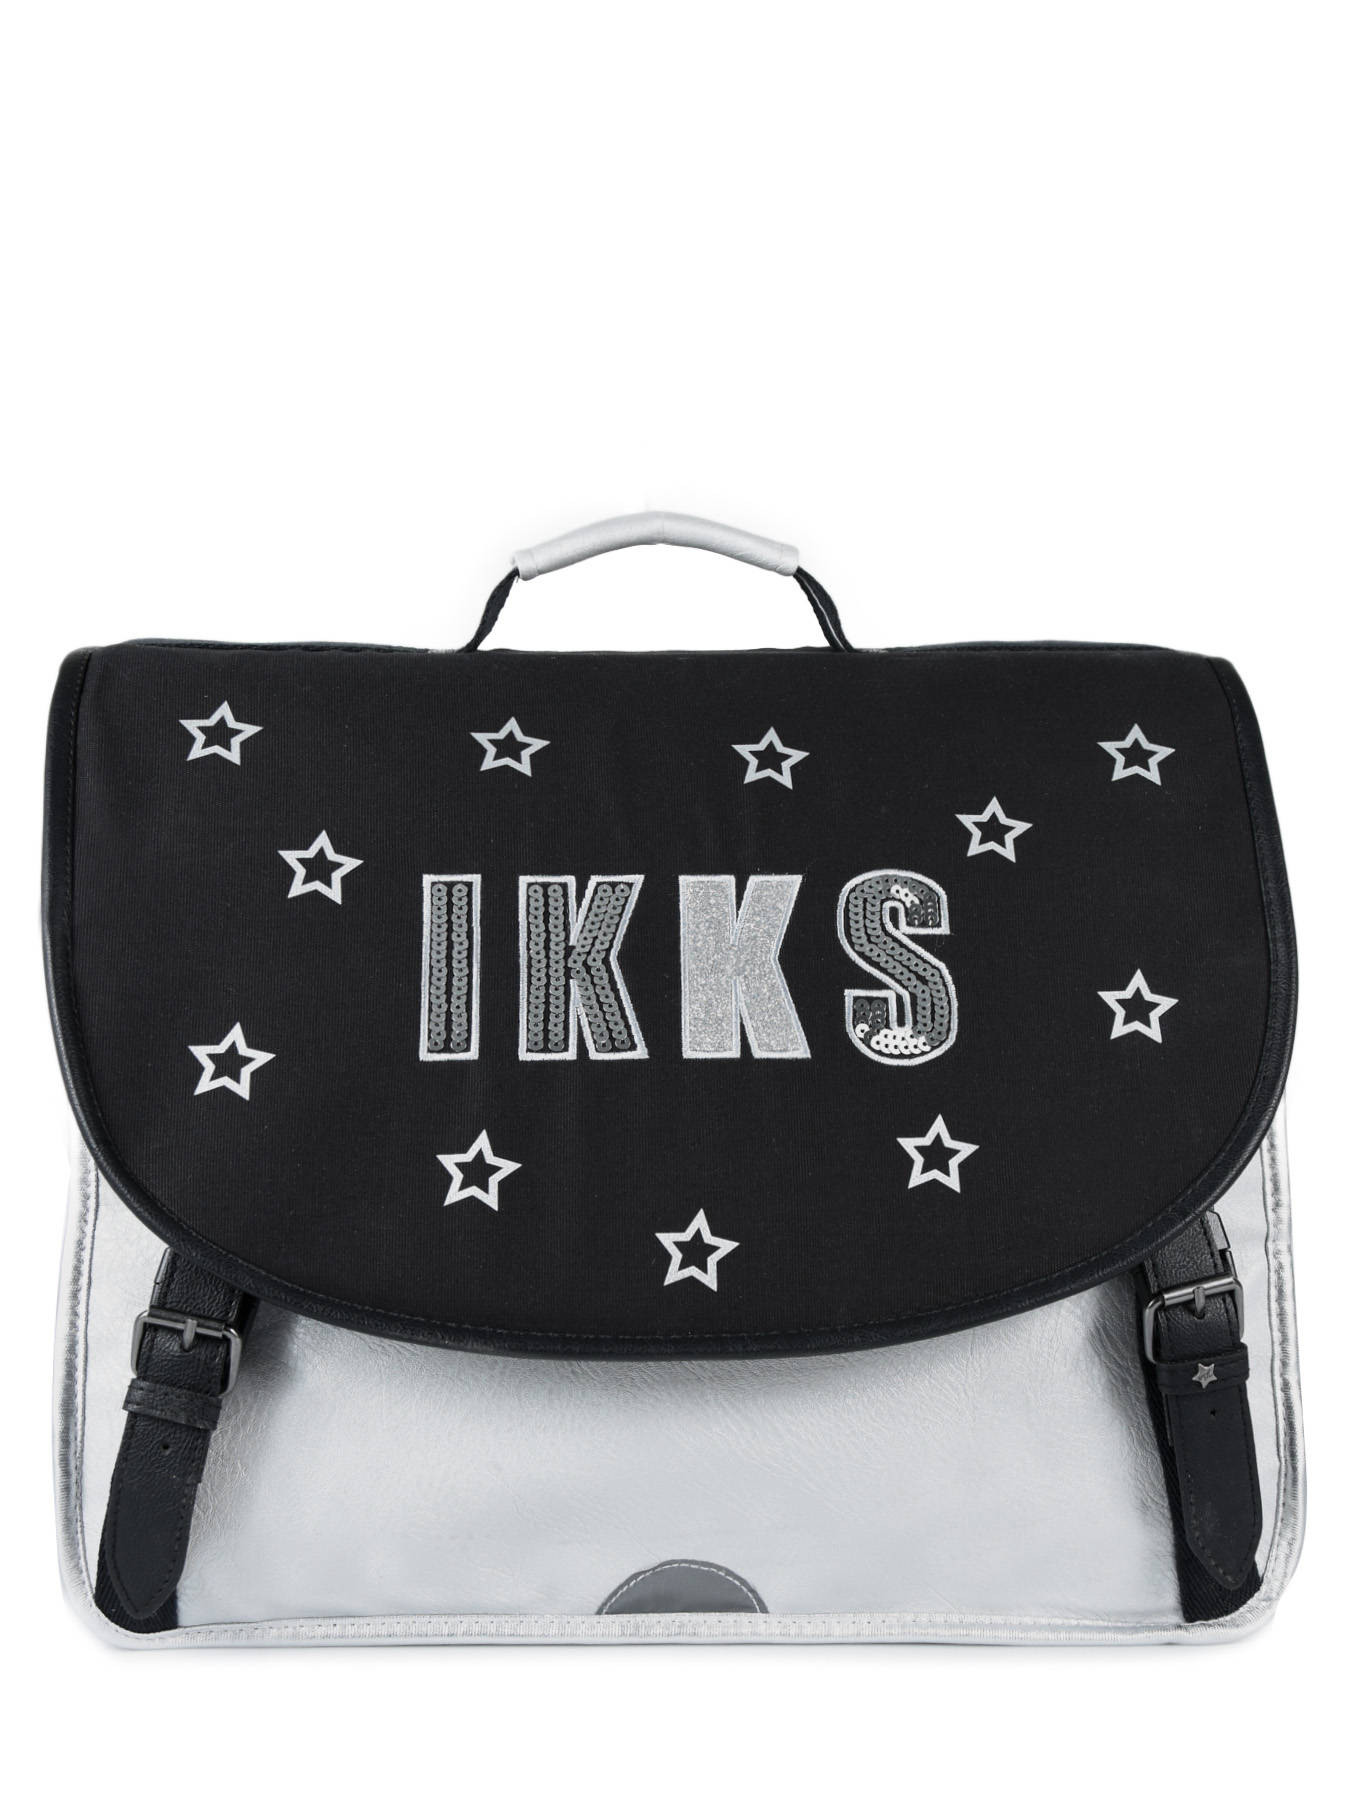 Ikks Cartable Lucy In The Sky Ikks cbtMVPET0